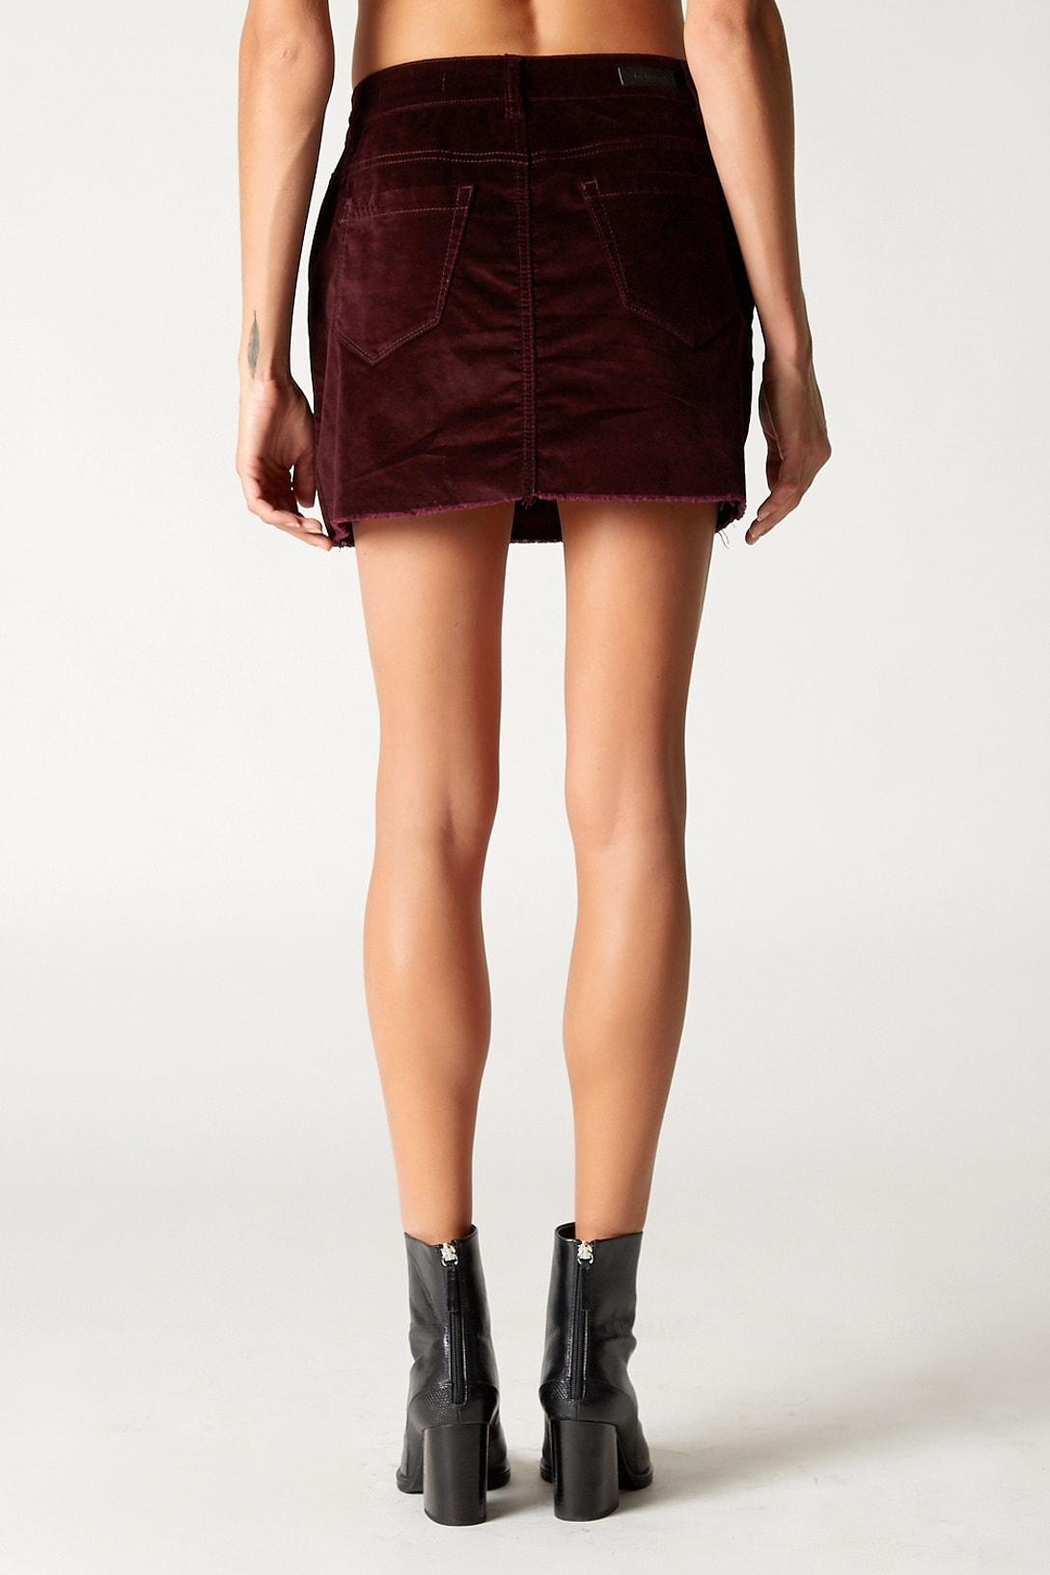 Blank NYC Wine Buzz Skirt - Side Cropped Image